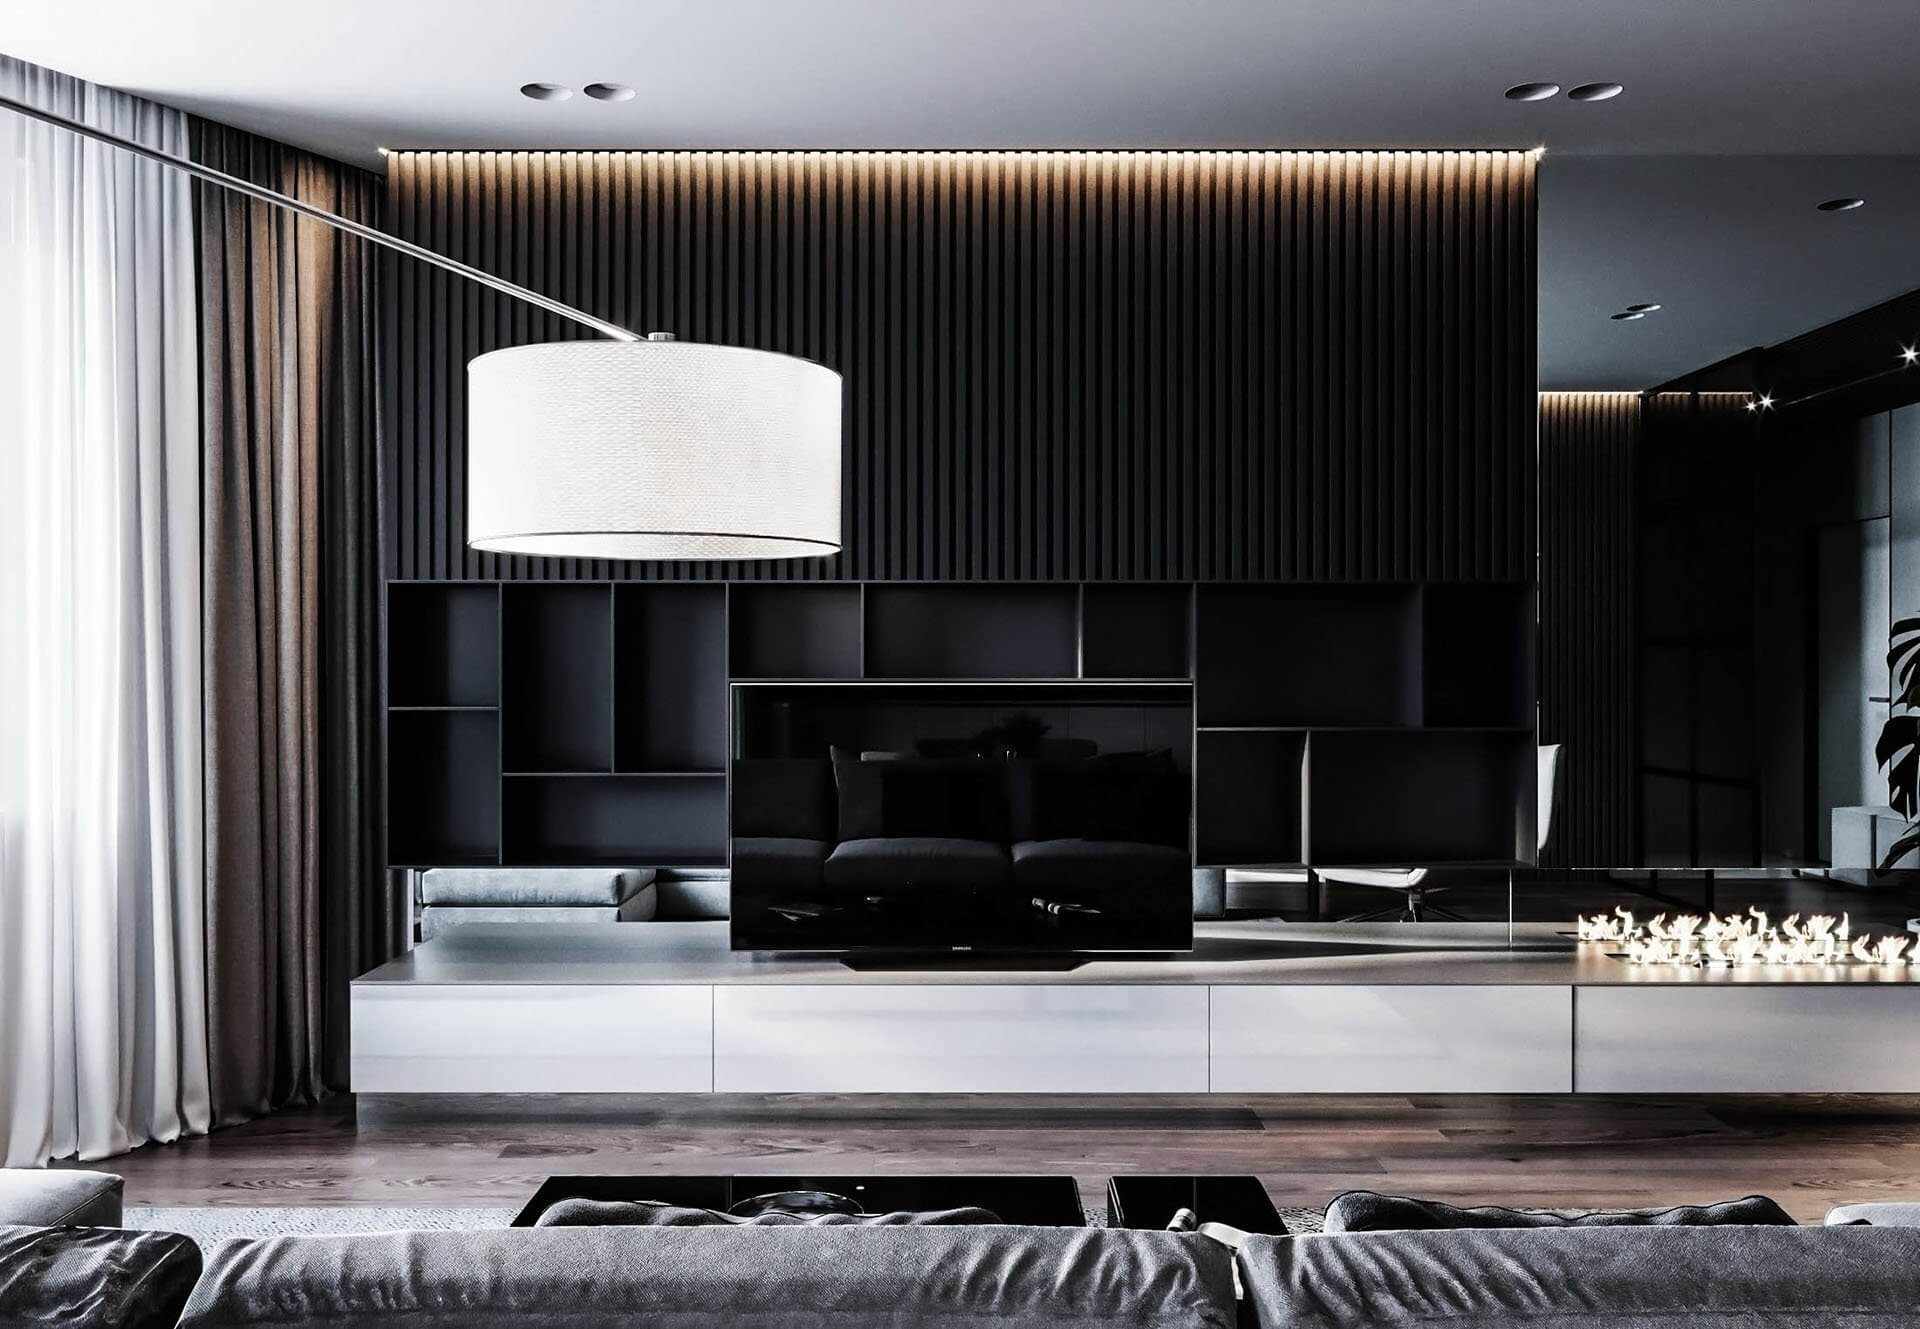 Dubrovka apartment tv wall living room fire place - cgi visualization